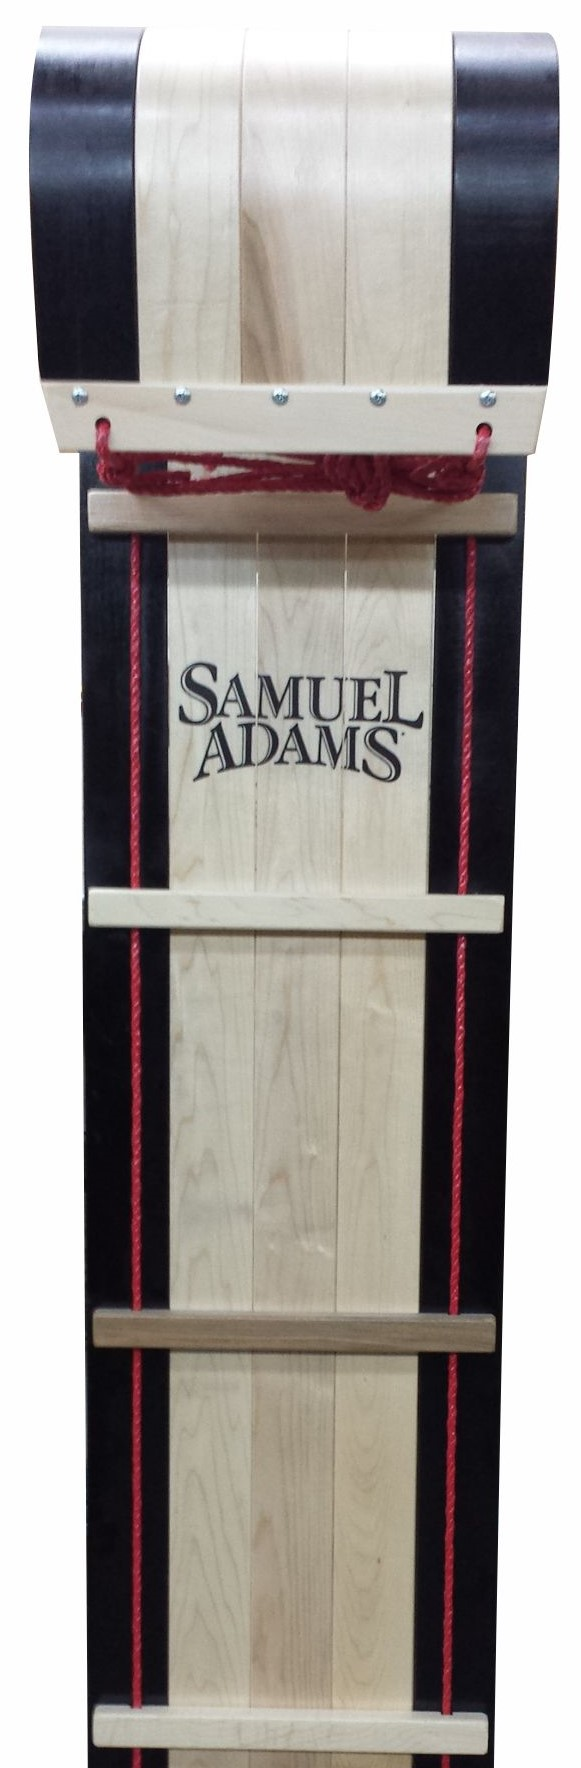 TOB-485SLA - Sam Adams.jpg